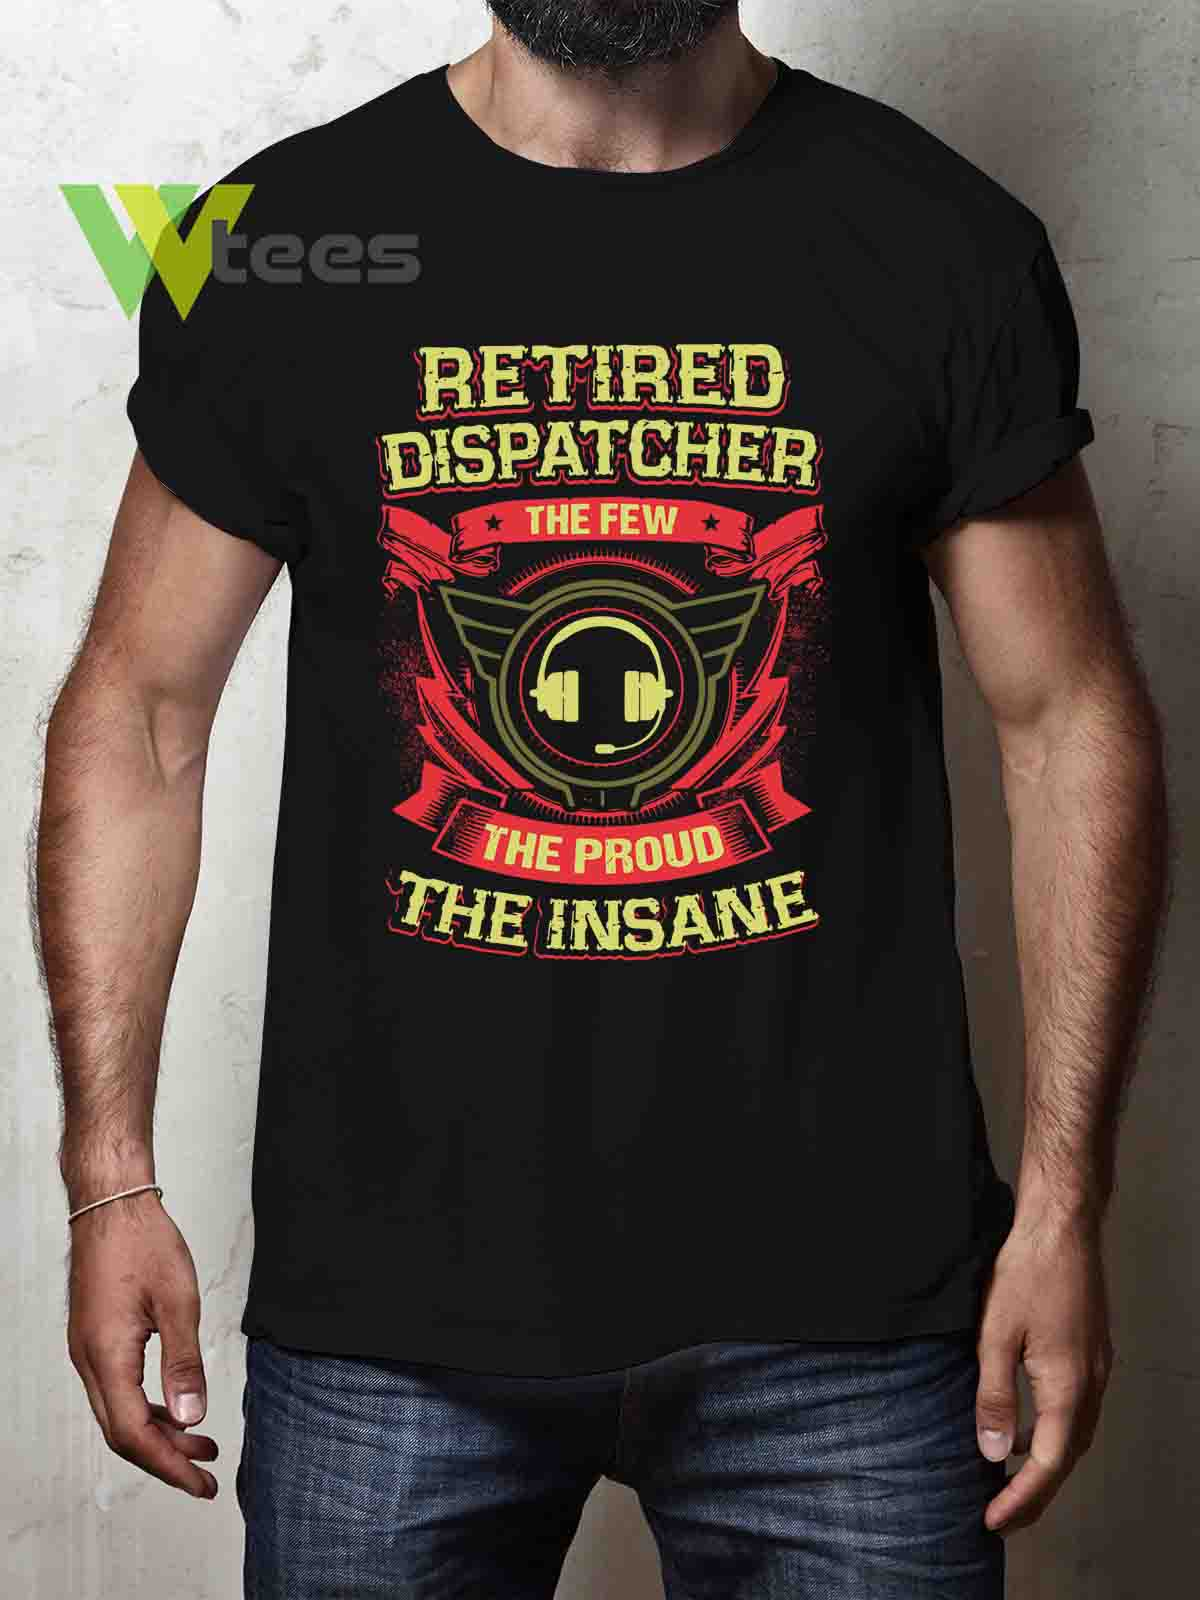 retired-dispatcher-the-few-the-proud-the-insane-T-shirt